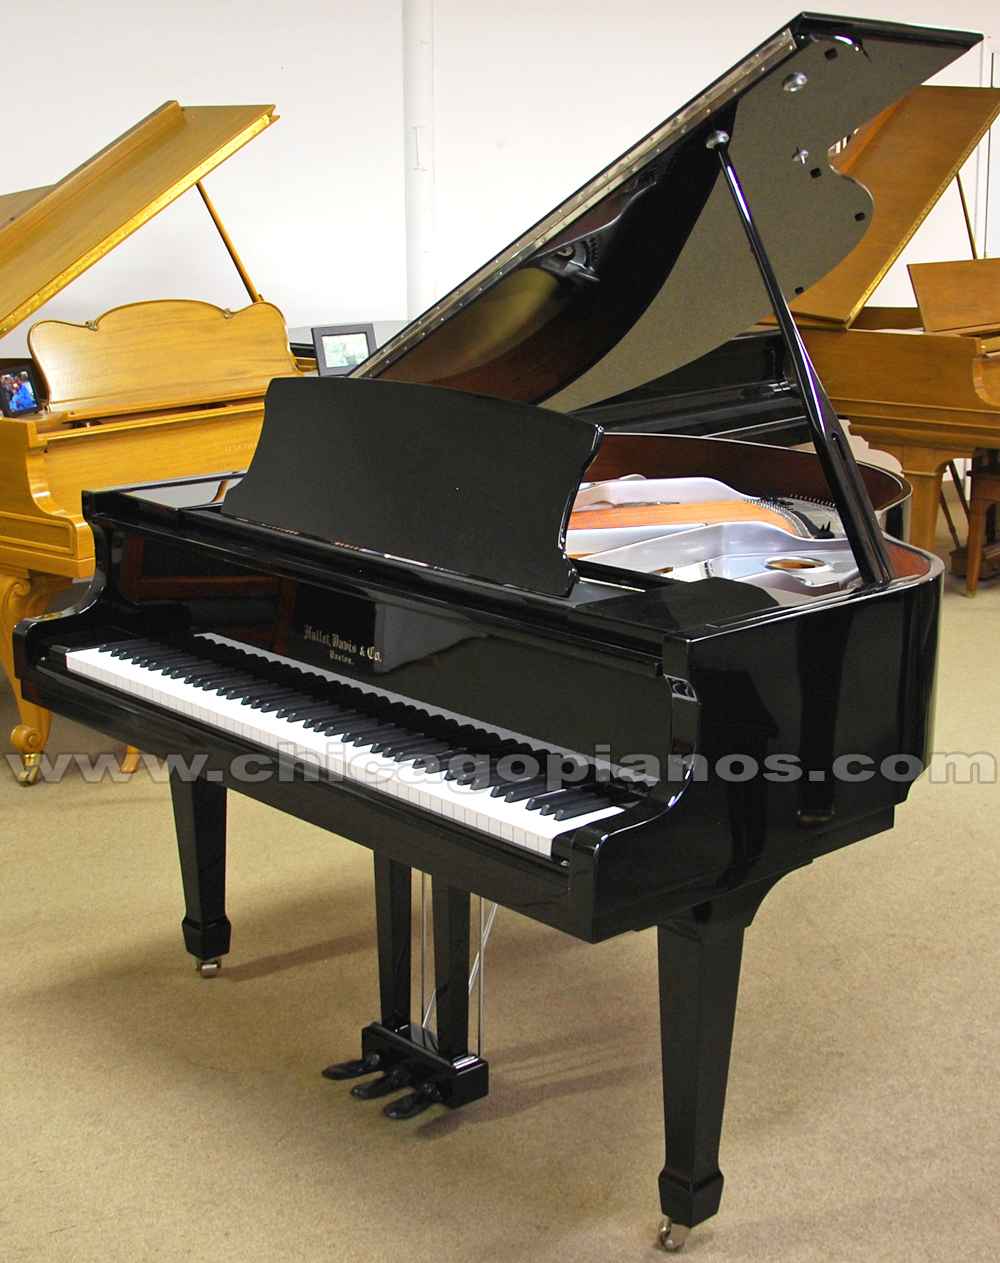 Hallet Davis HS-148 Ebony Polish Nickel Plate Grand Piano